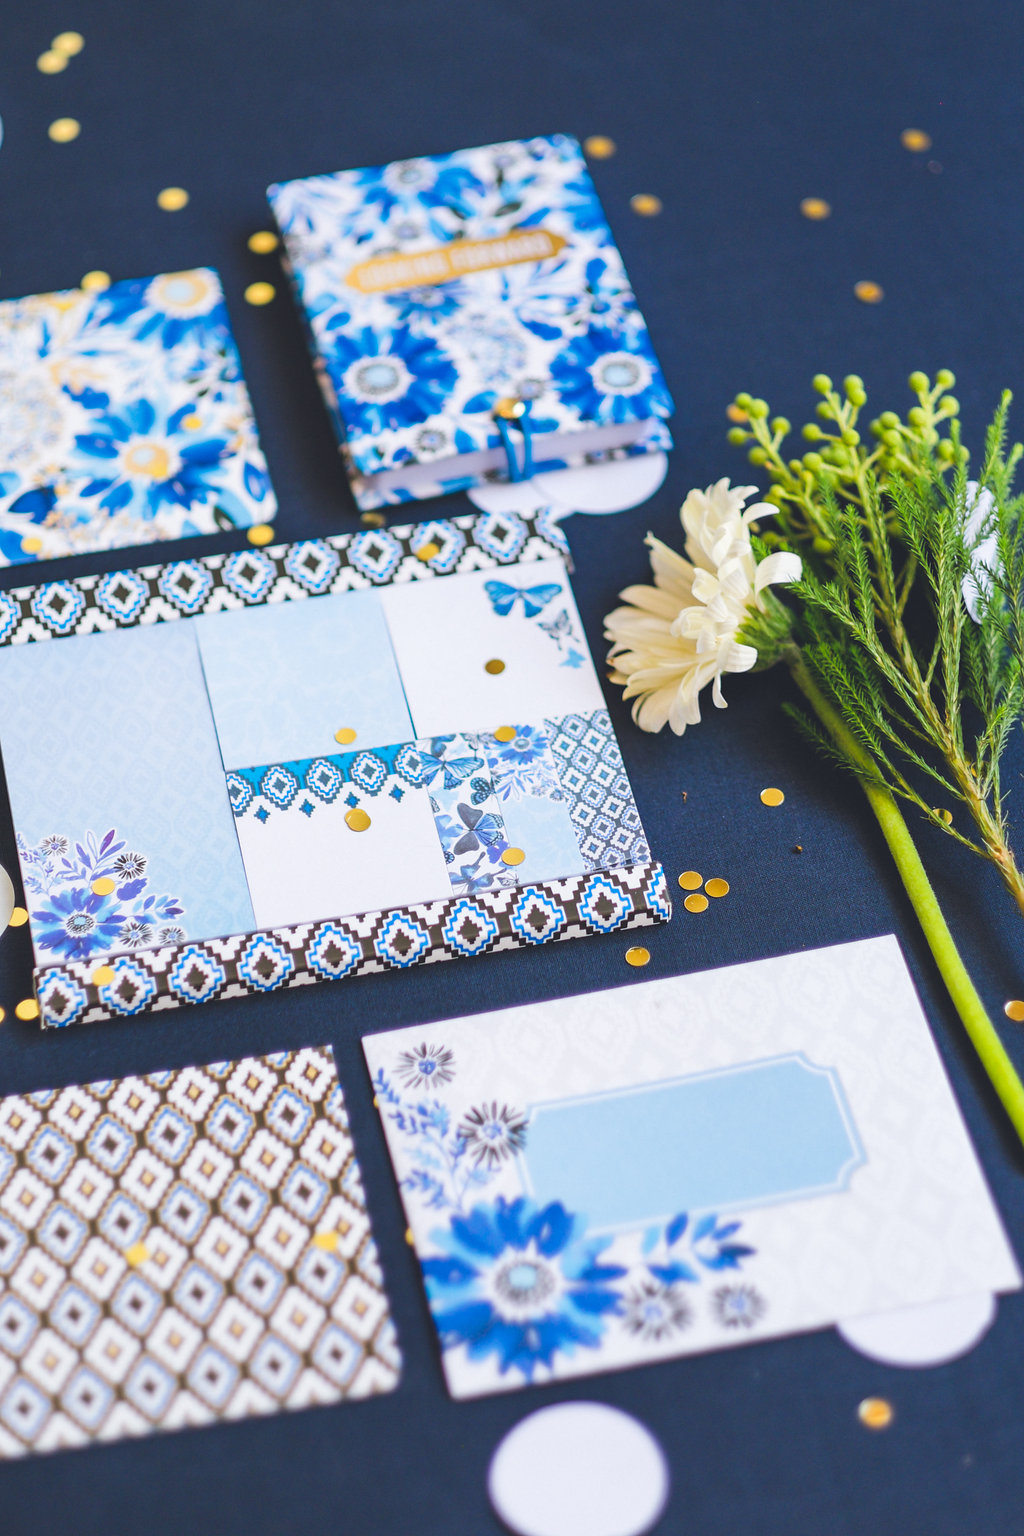 """Stationery items in my """"Nature Trail"""" pattern. Loving the blues and blacks with gold accents!"""